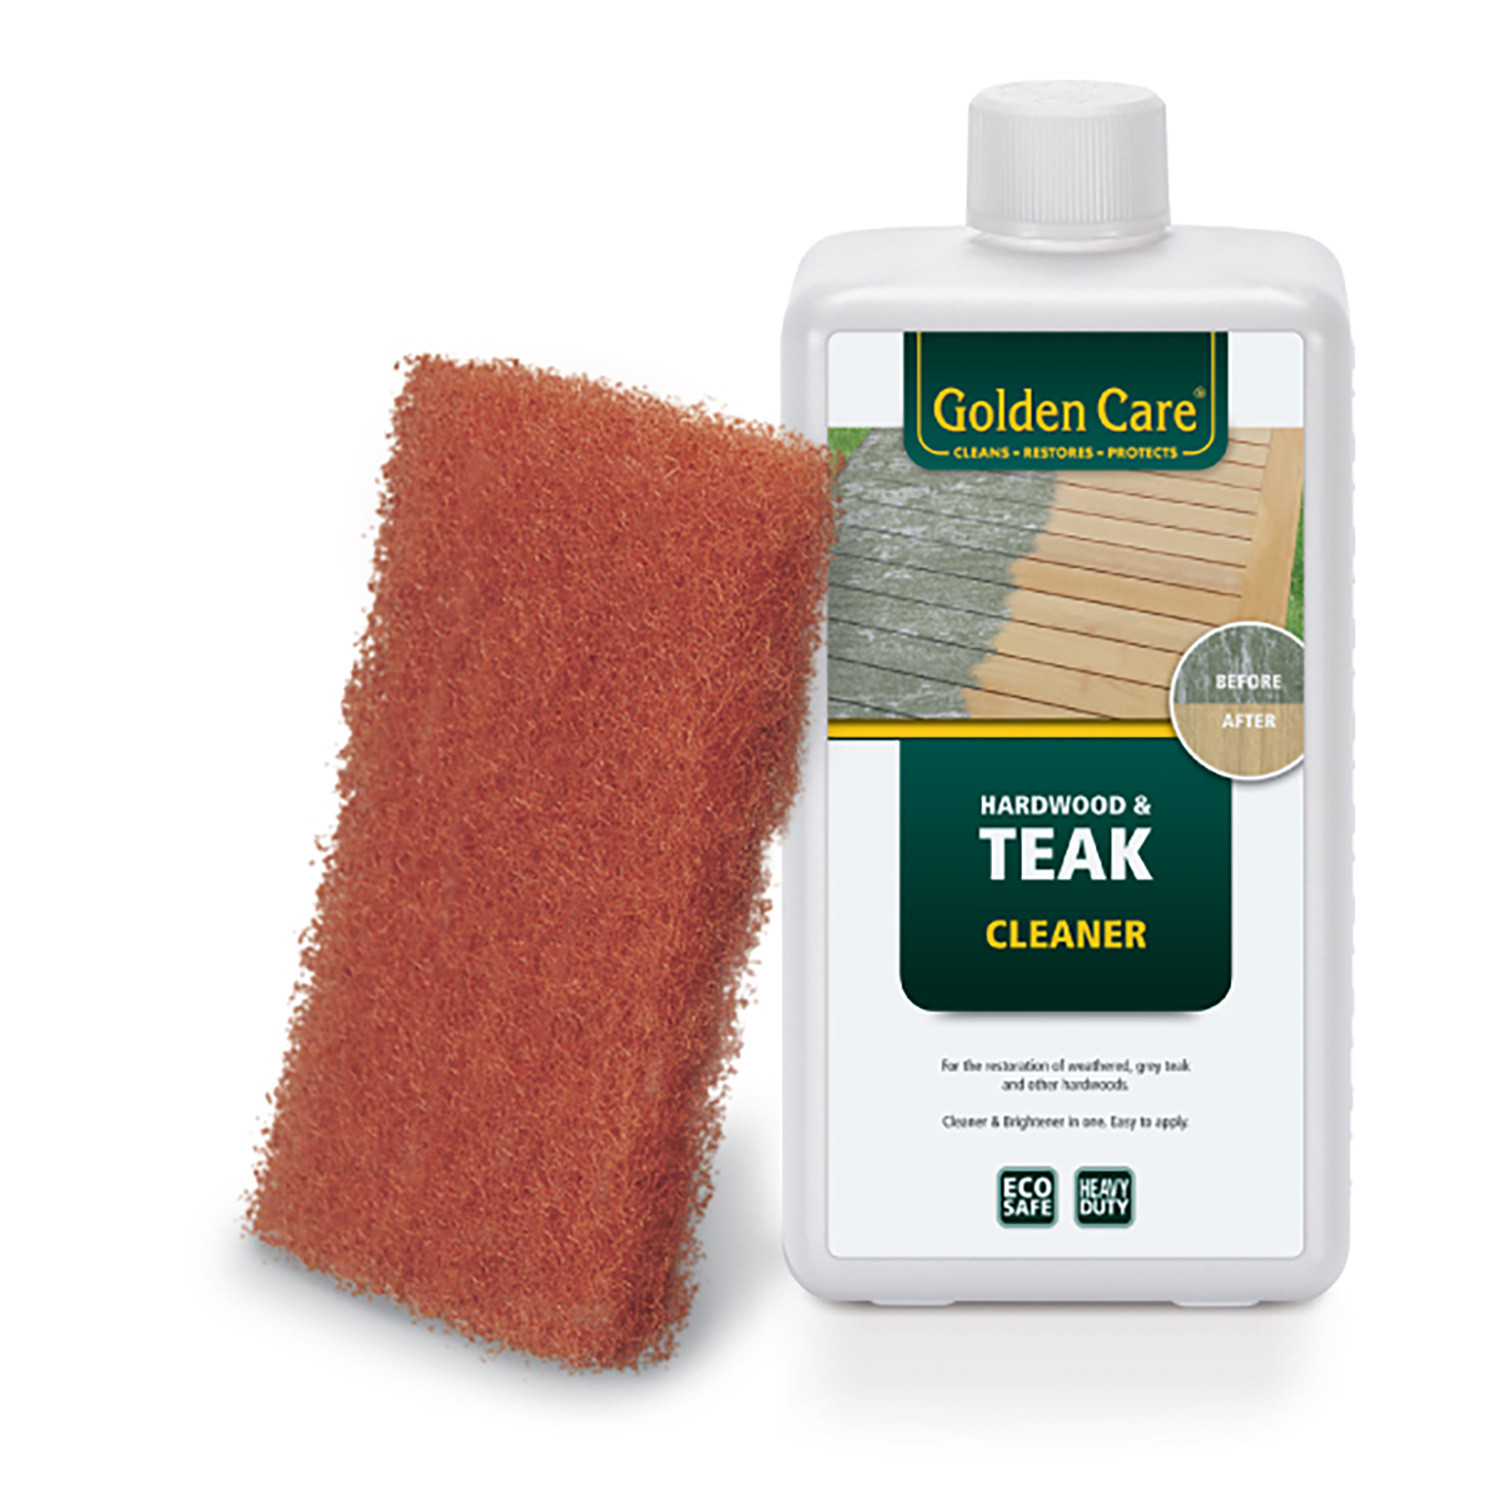 Teak and Hardwood Cleaner